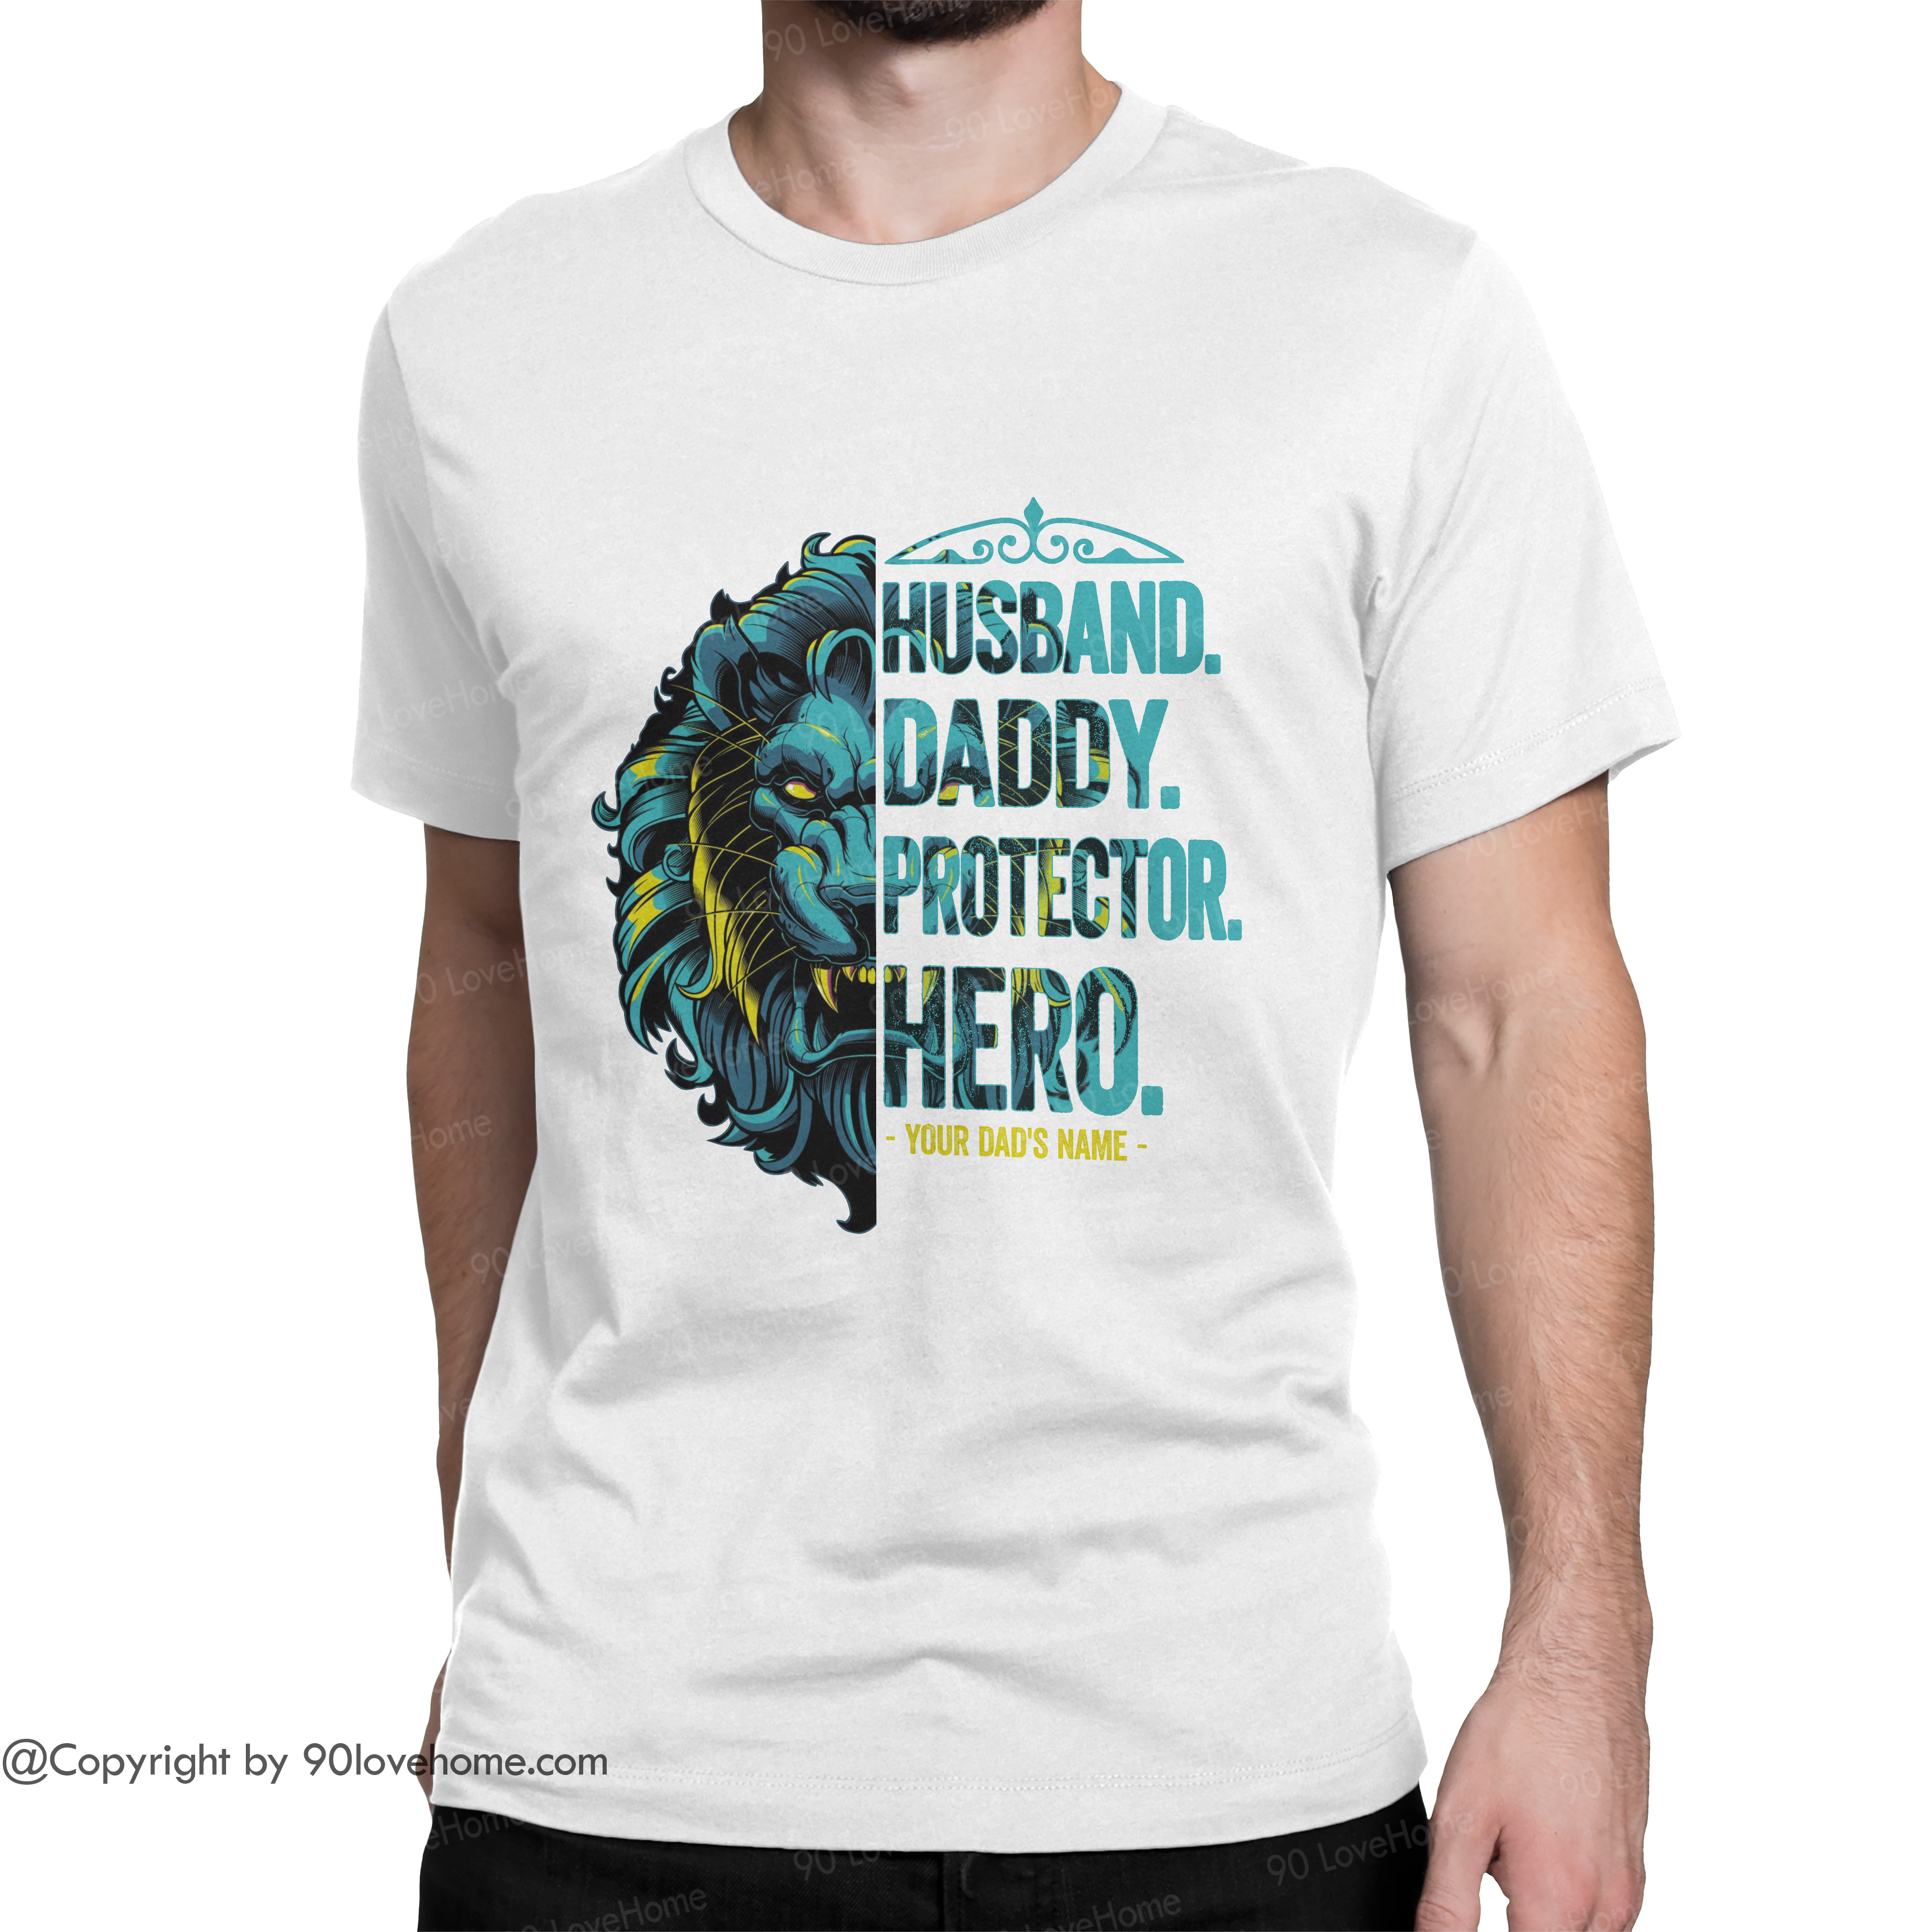 Personalized Husband Daddy Protector Hero Unisex T-shirt Super Dad Tee Father's Day Birthday Gift For Dad 90LoveHome